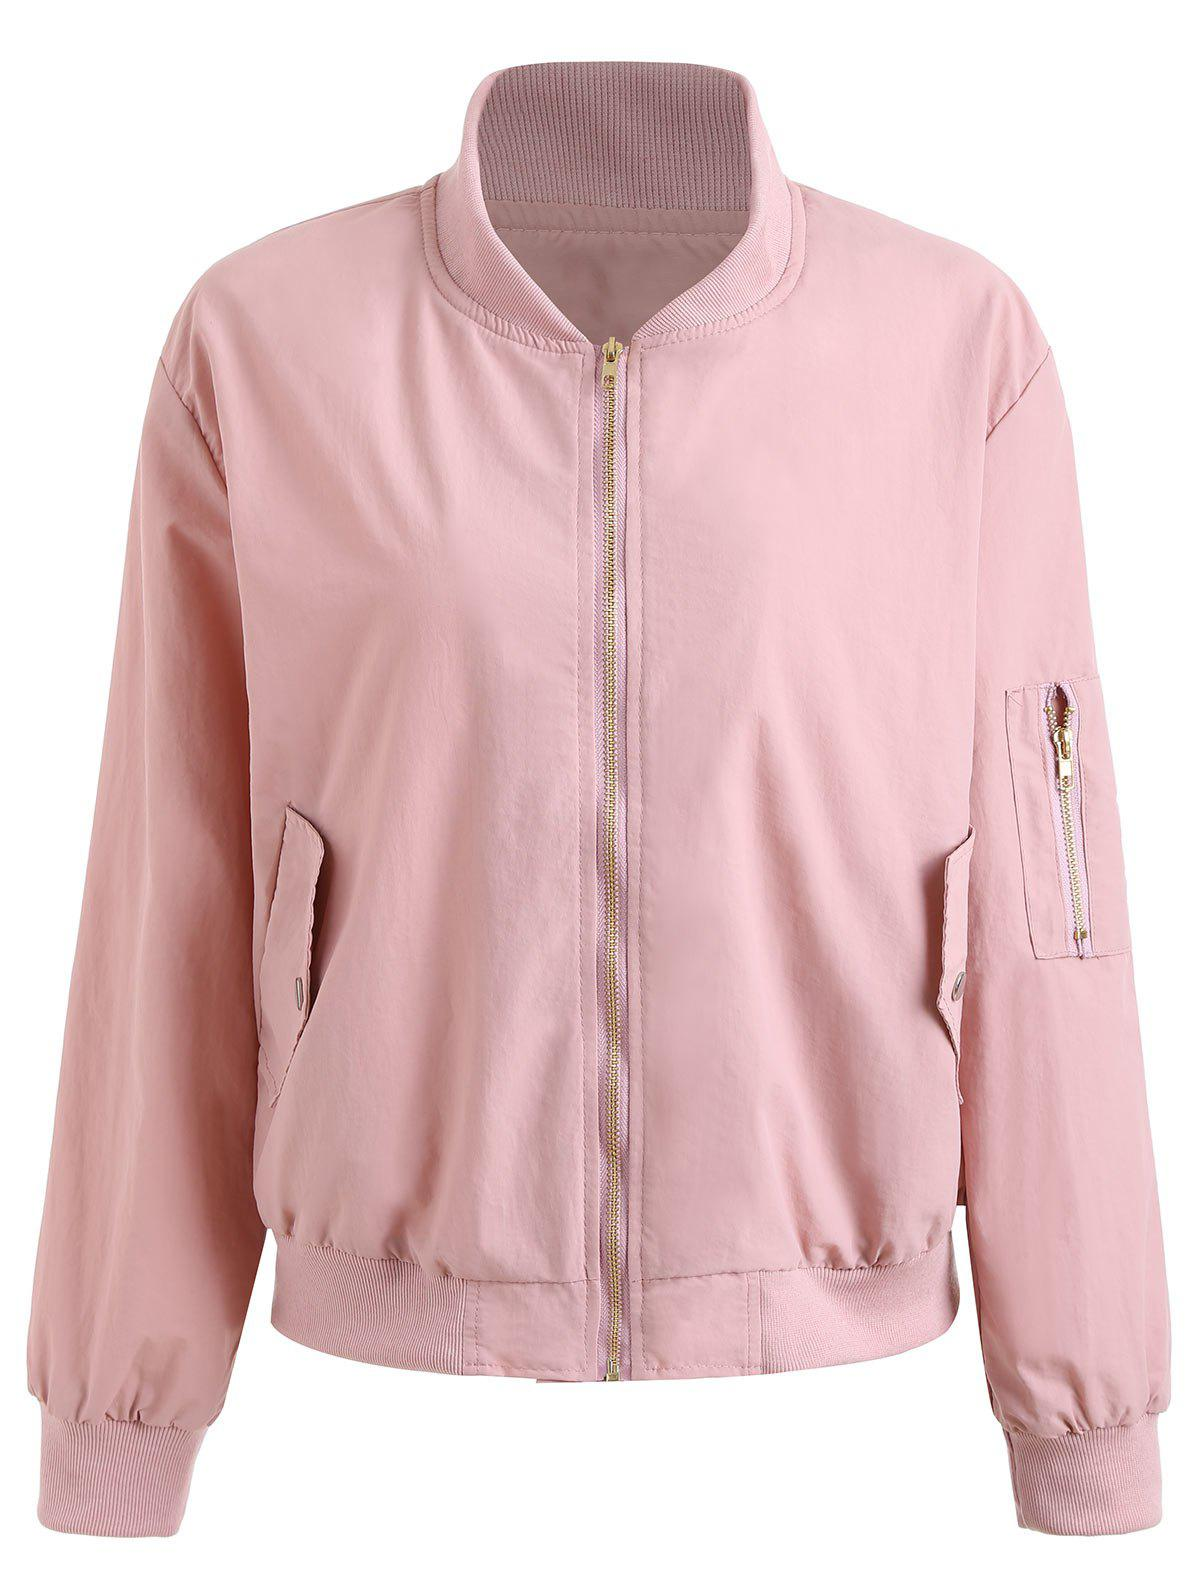 Plus Size Zipper Drop Shoulder Jacket - PINK 4XL